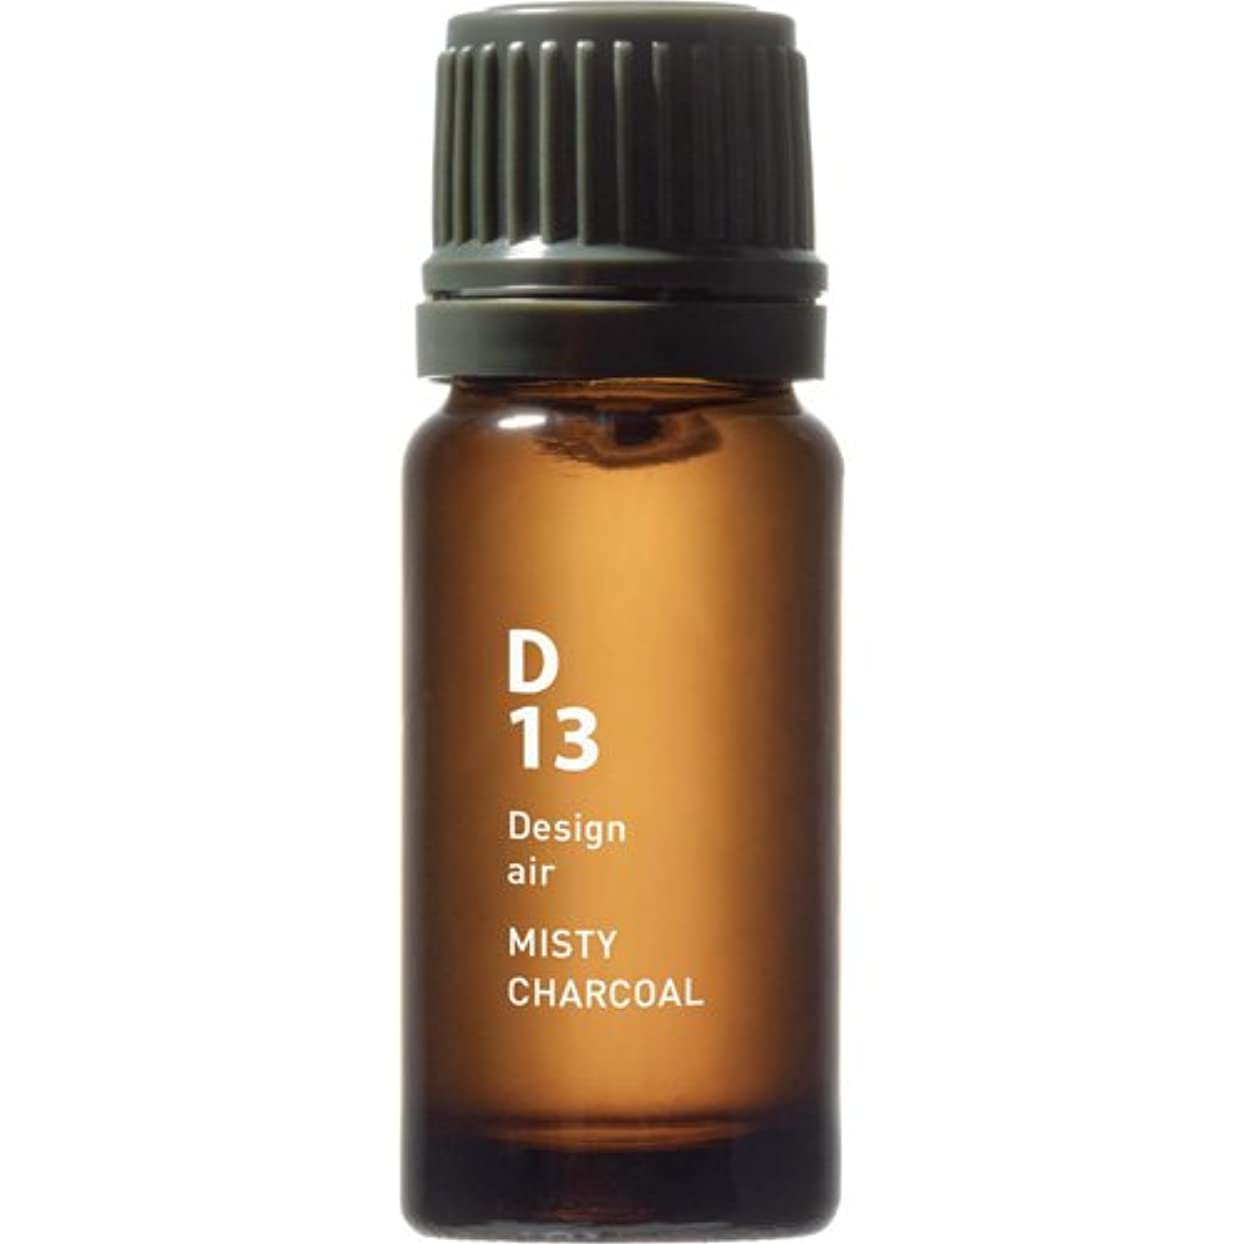 コック物理宿D13 MISTY CHARCOAL Design air 10ml